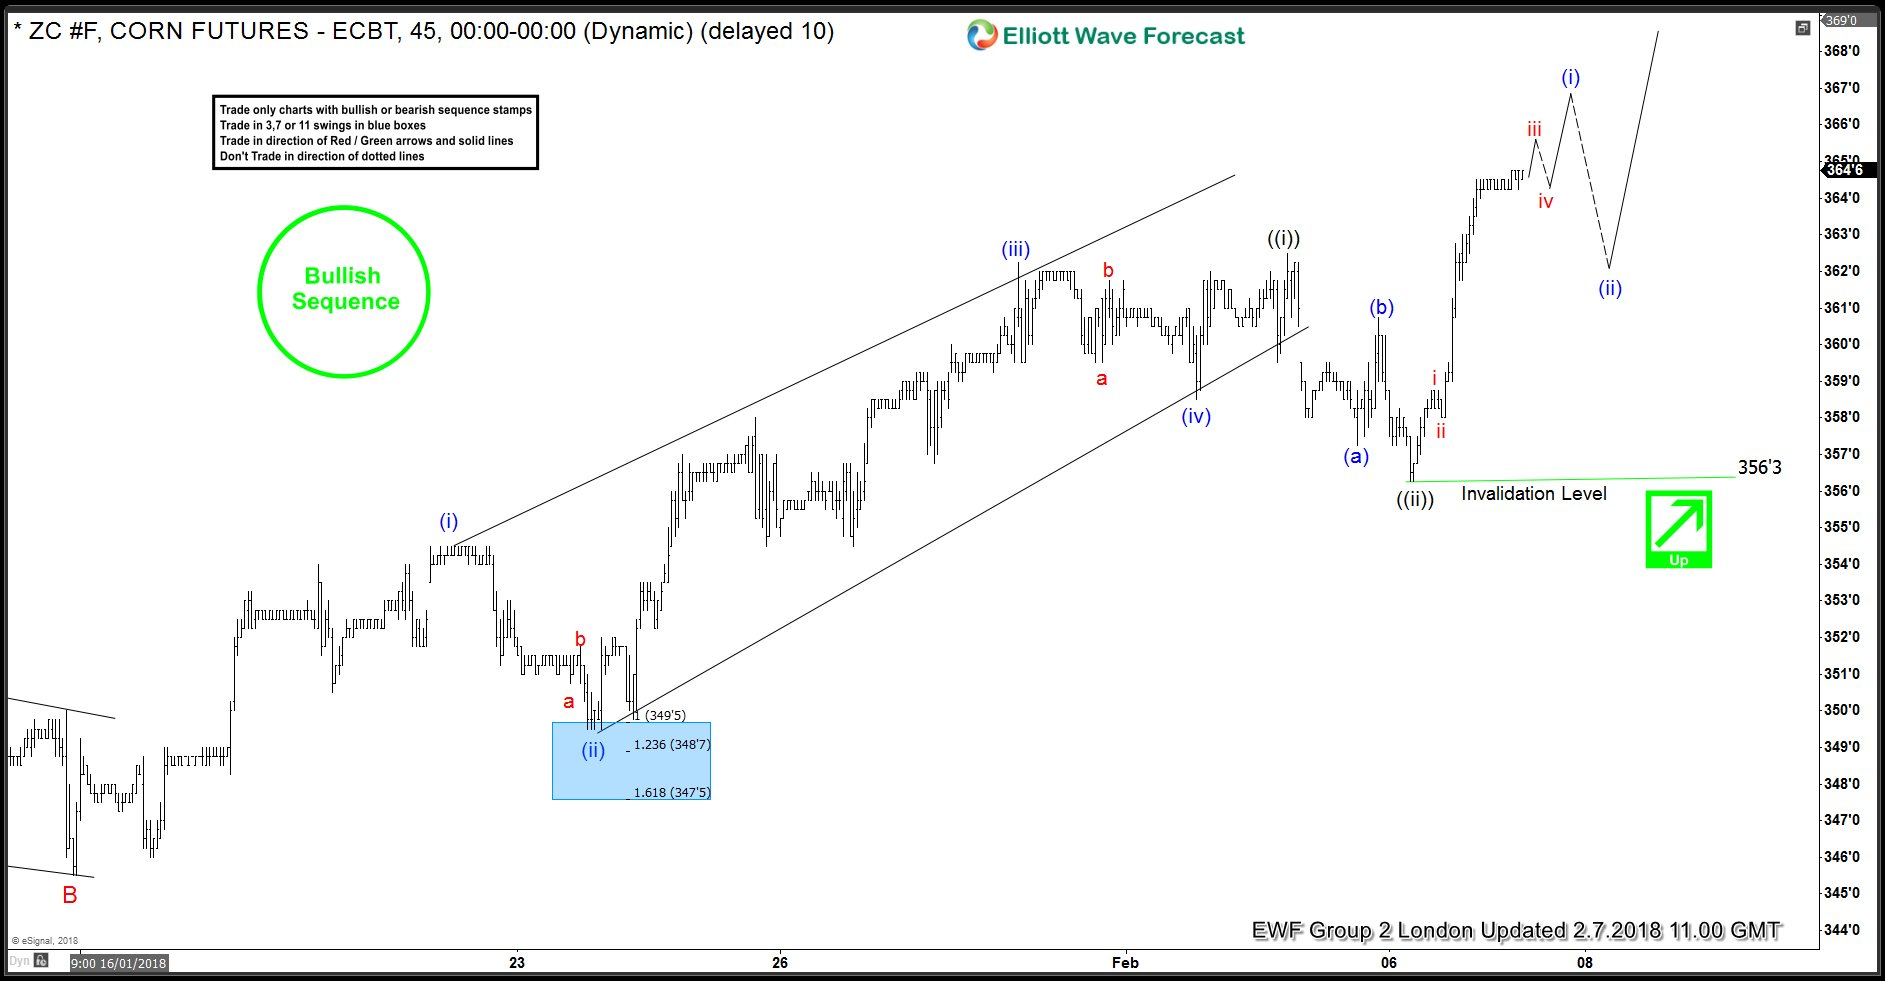 CORN (ZC #F) Futures Impulsive Elliott Wave Rally